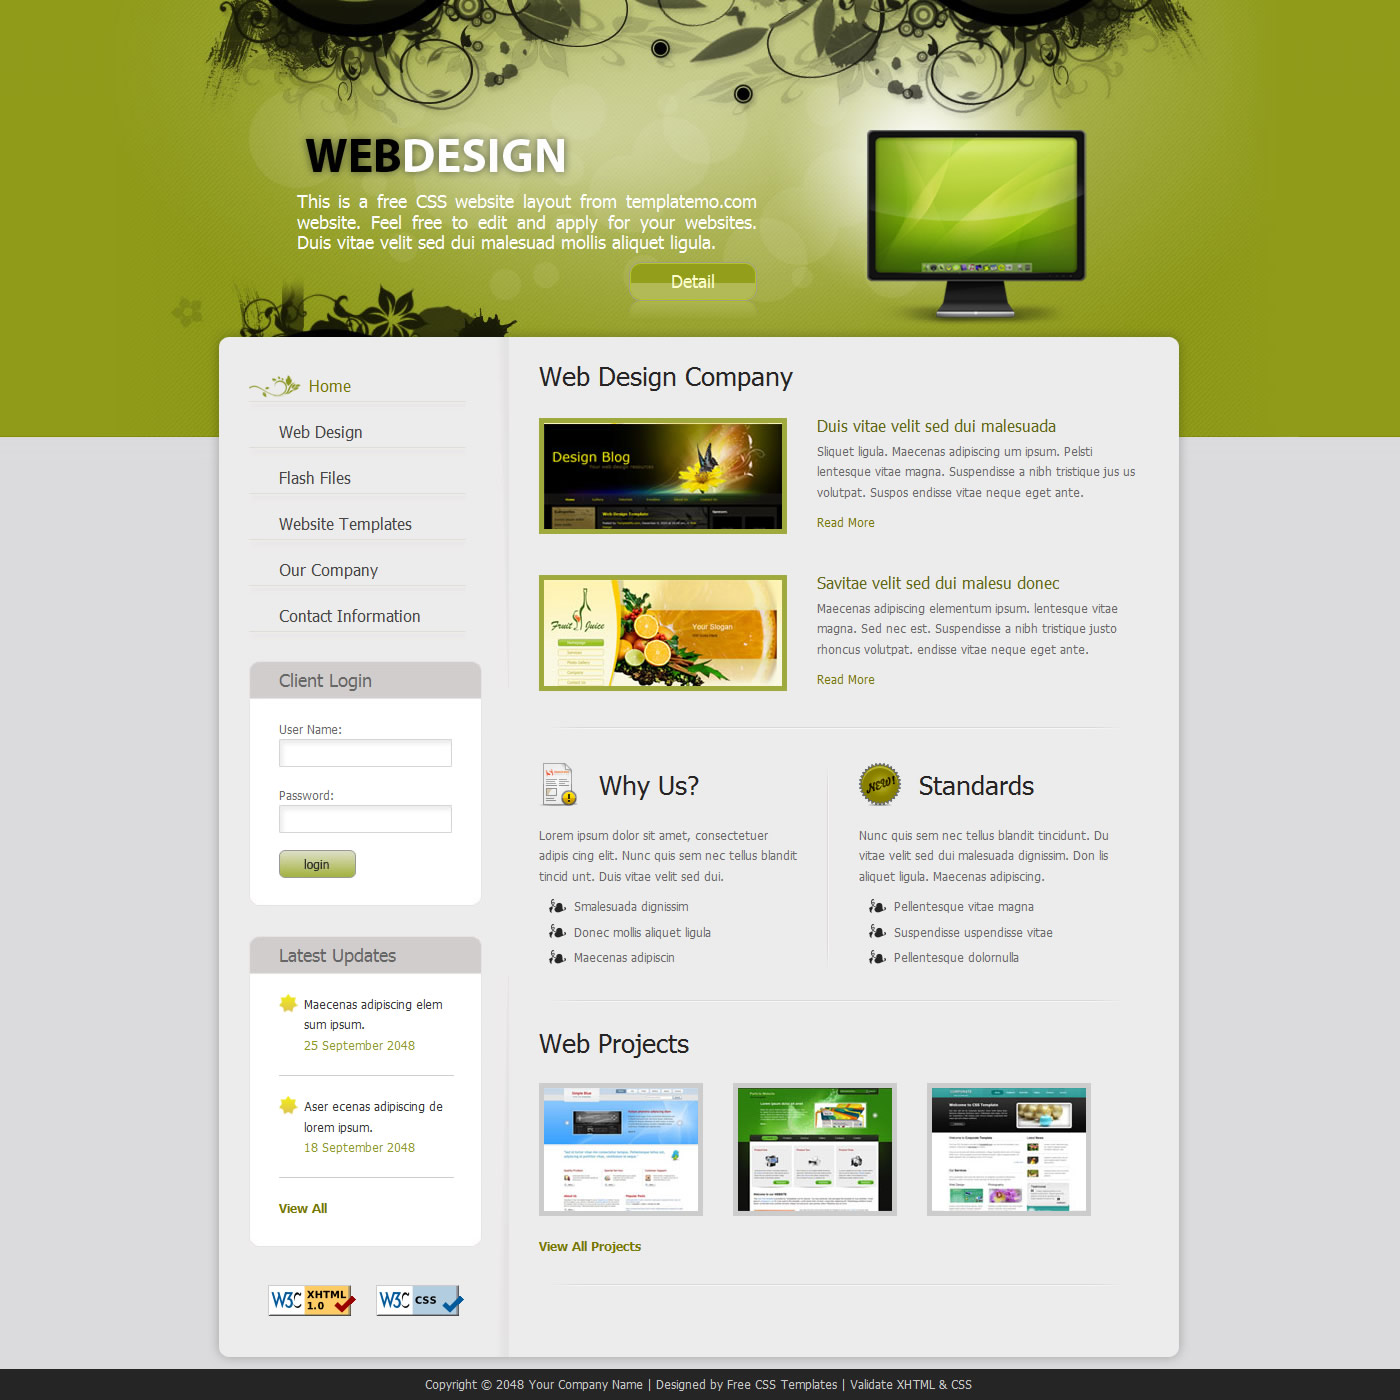 templatemo_243_web_design.jpg